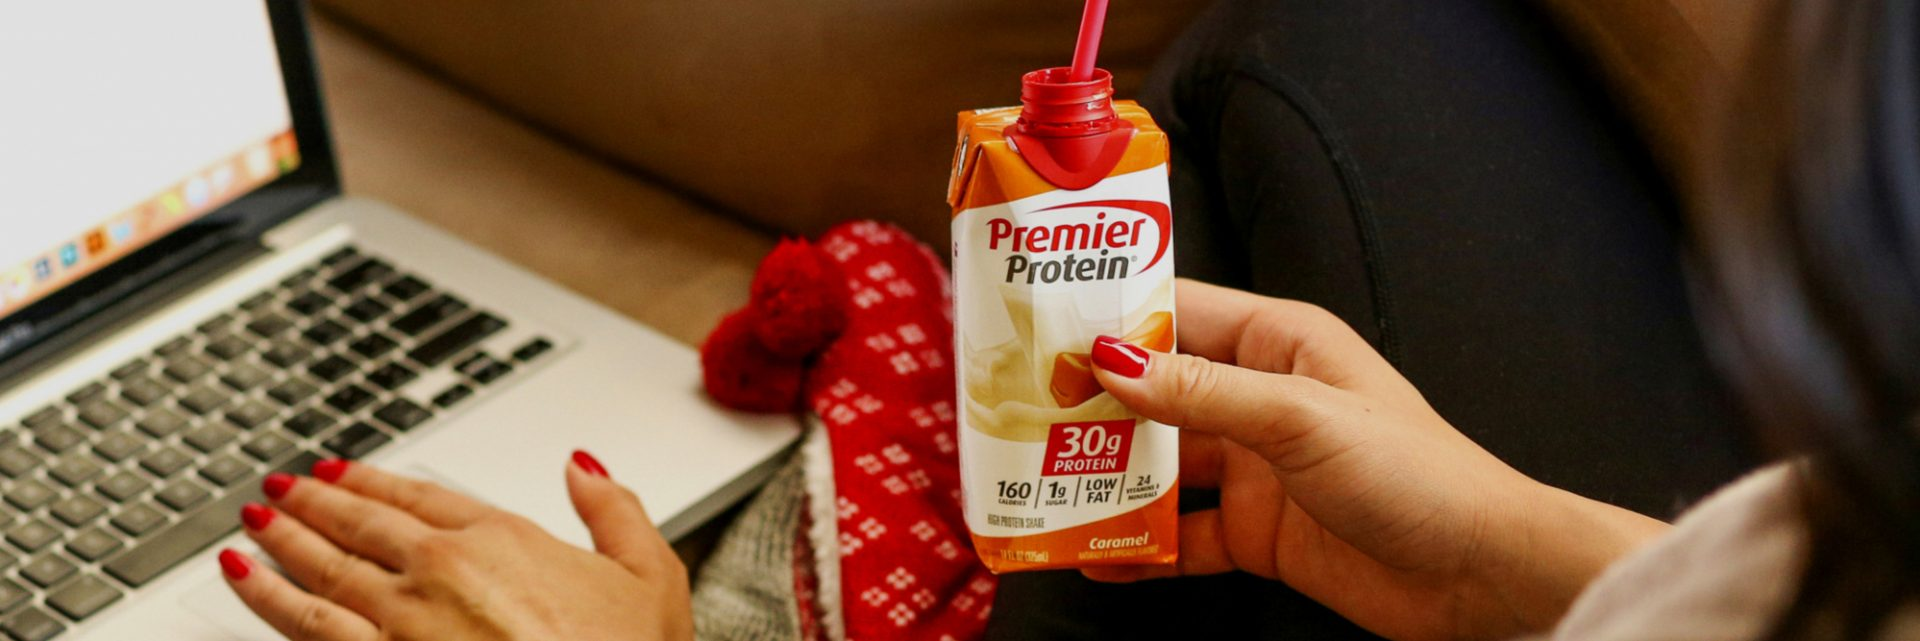 A women at a computer drink a Premier Protein Caramel Protein Shake